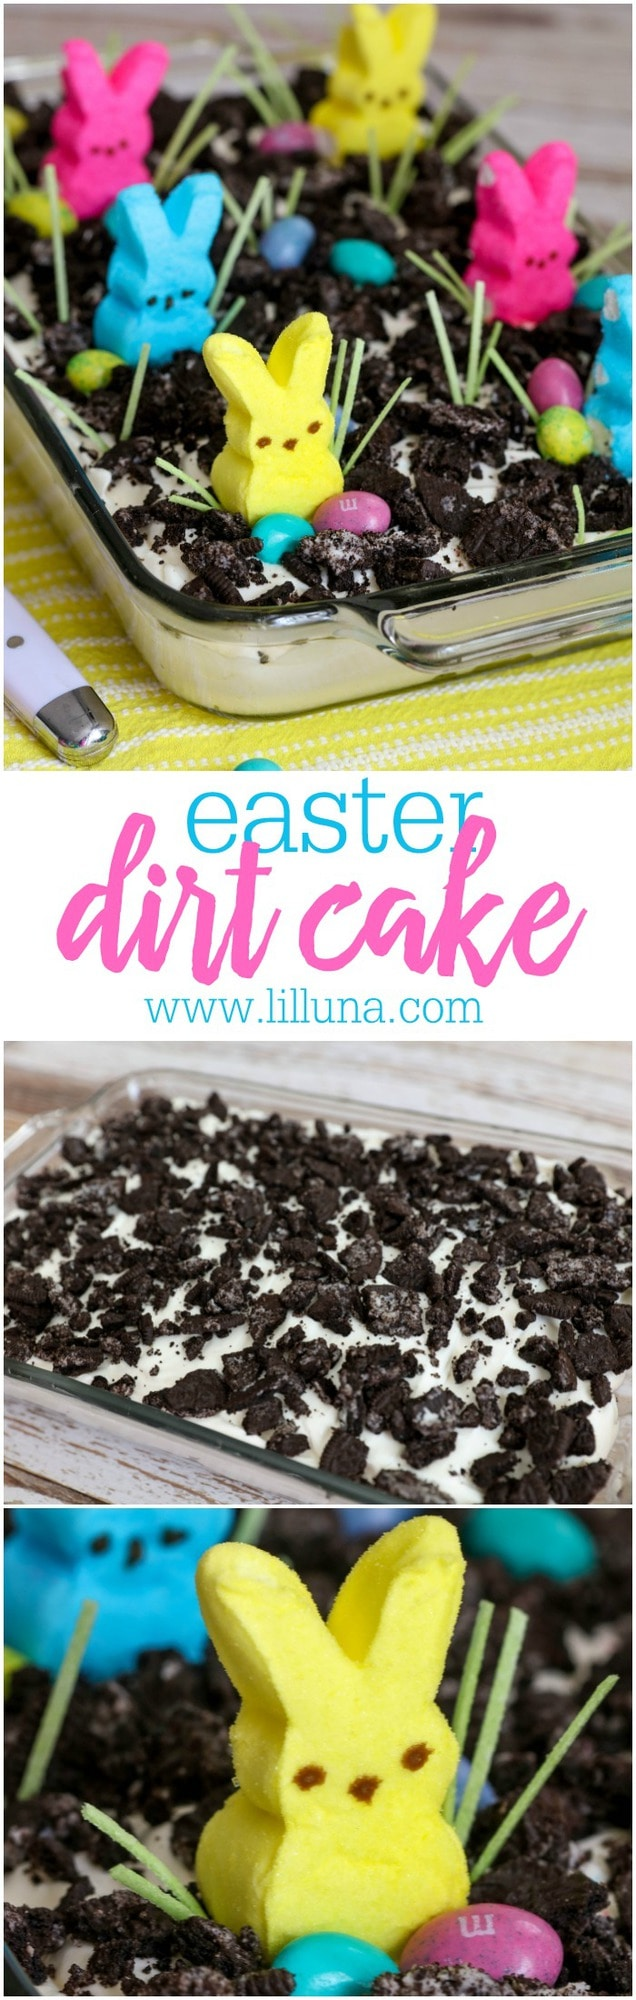 BEST Easter Dirt Cake Lil Luna